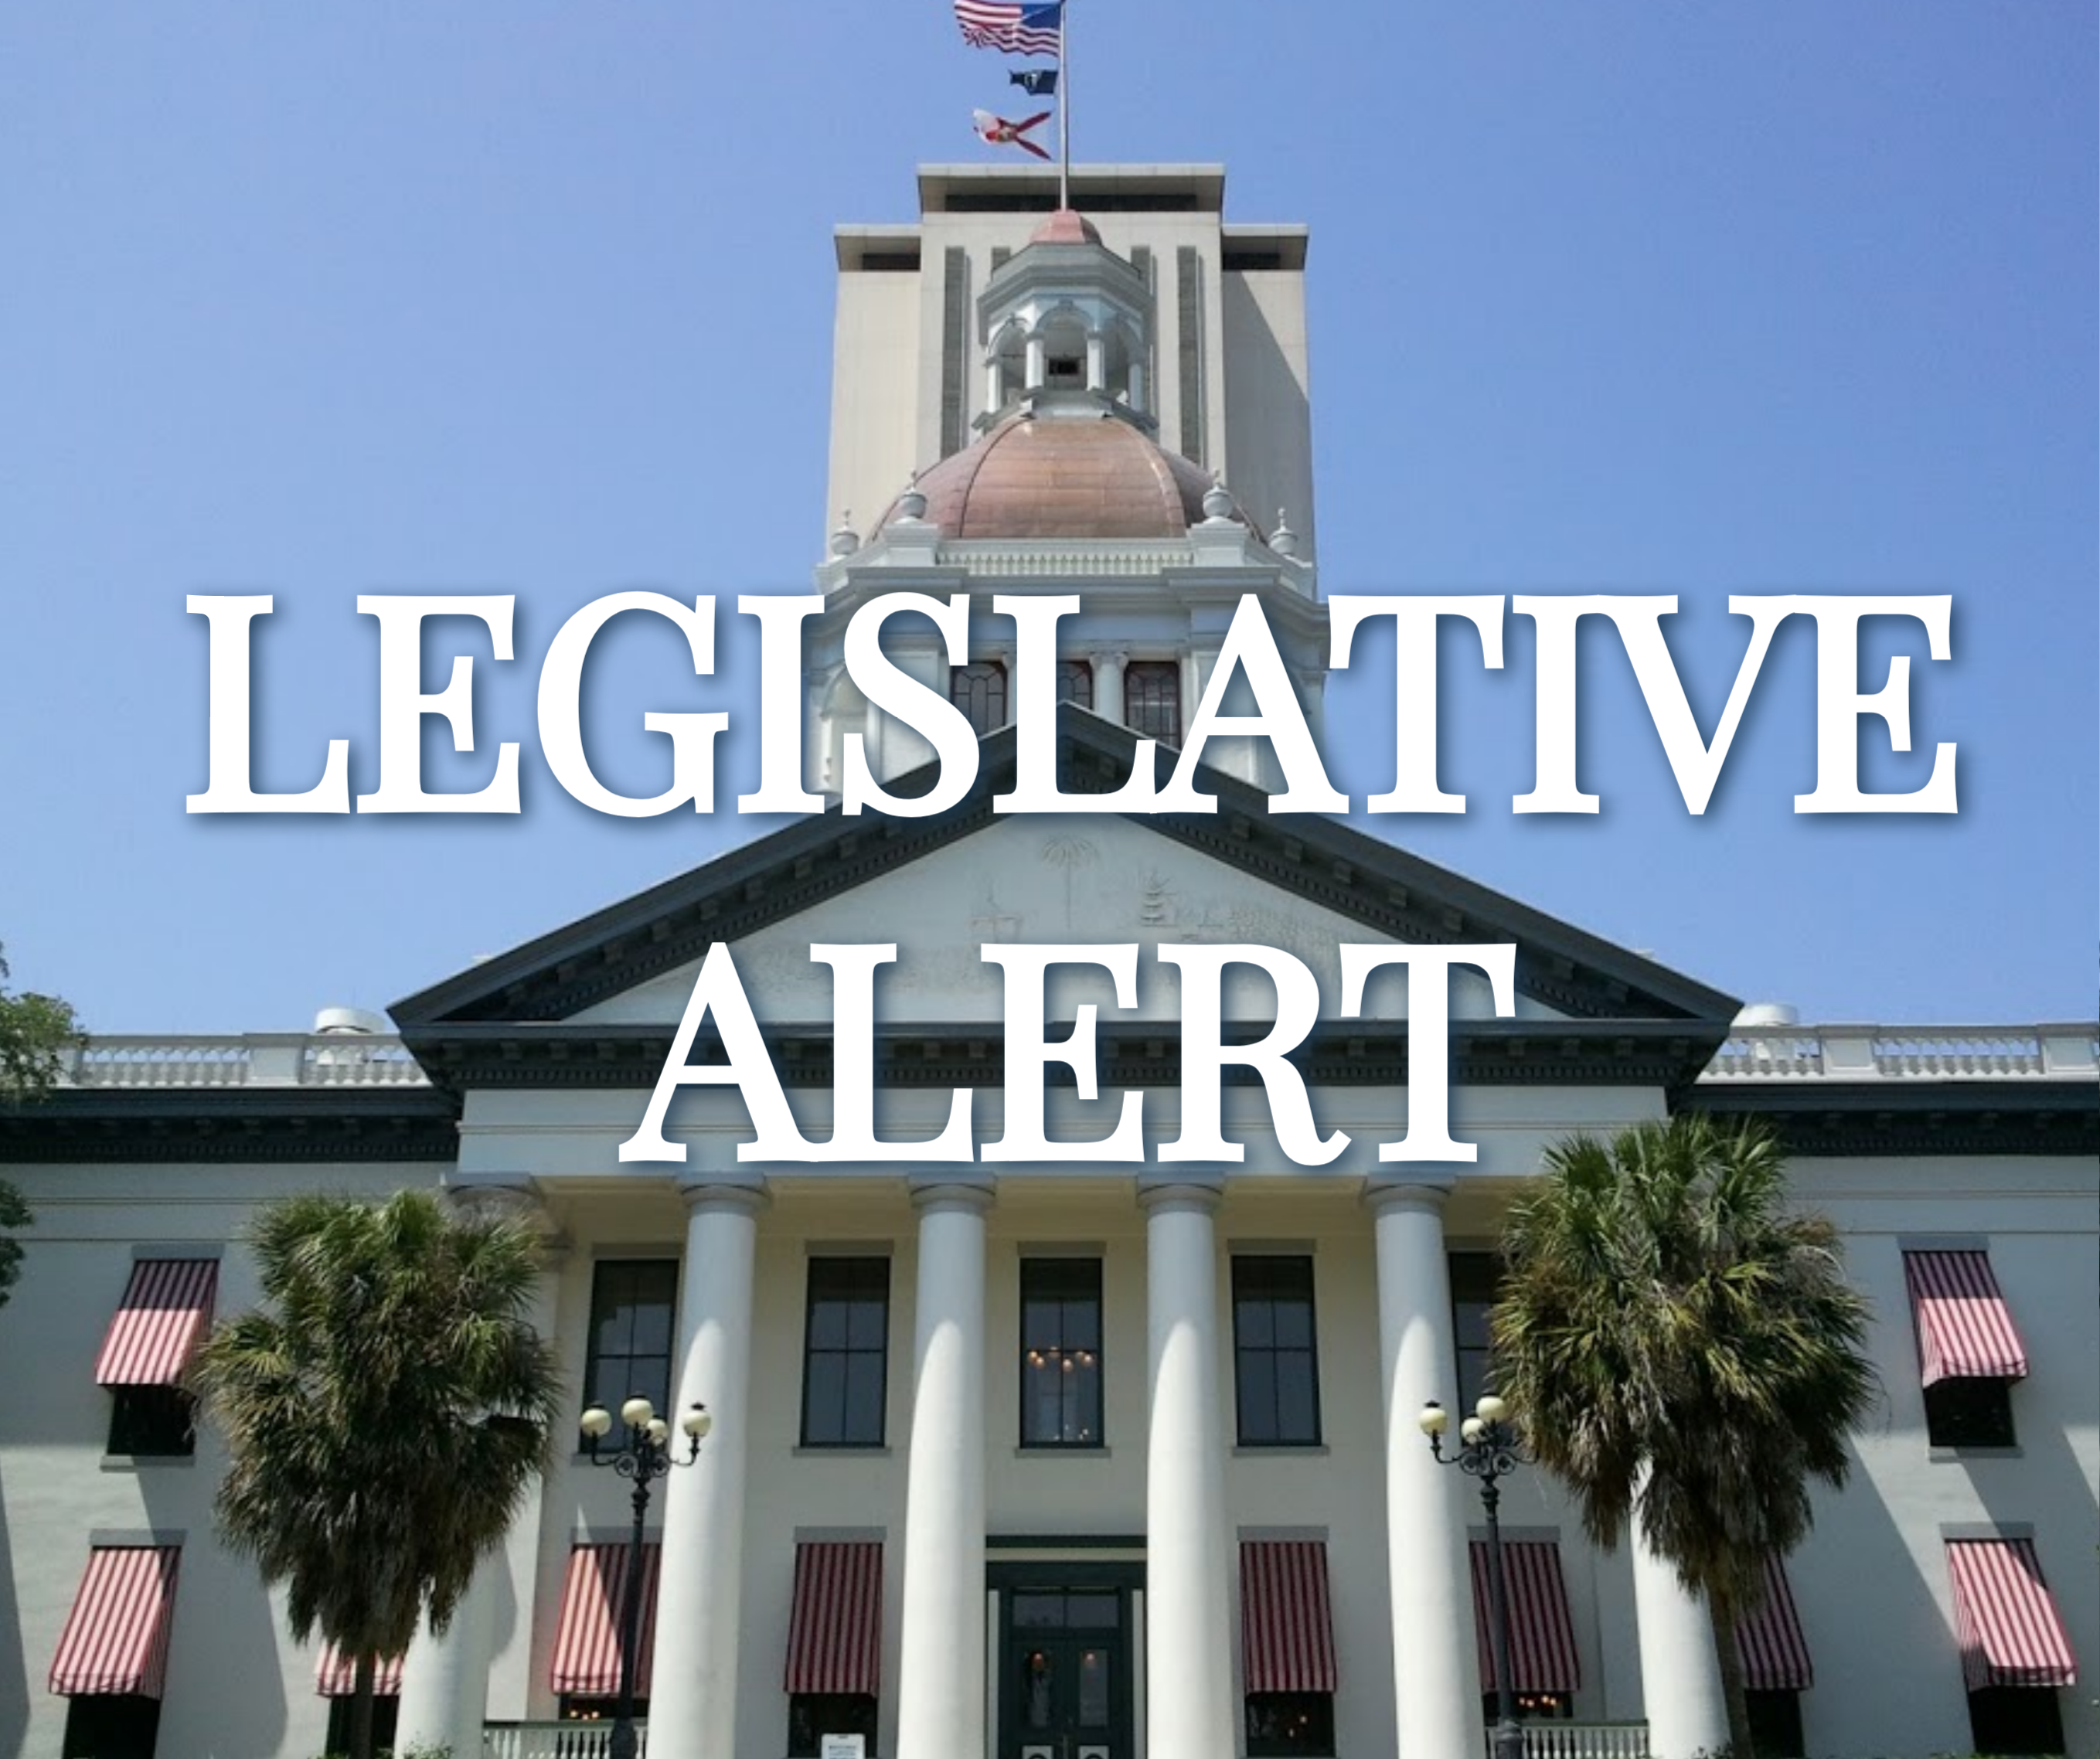 BREAKING NEWS: Florida's Senate Health Policy Committee voted unanimously in favor of assisted living facility deregulation (SB402). Image